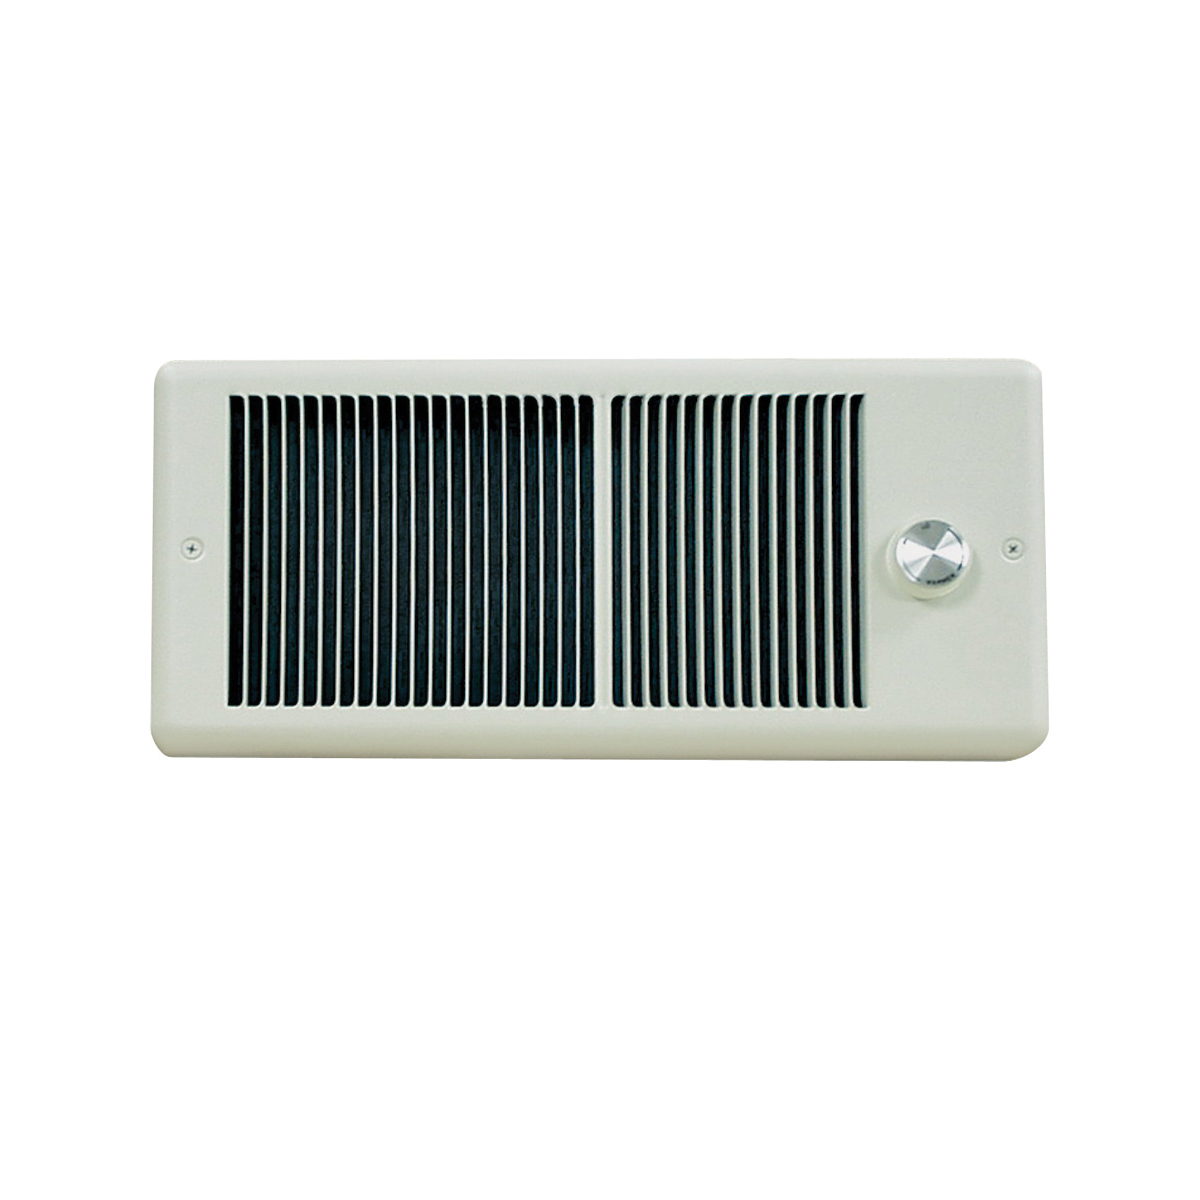 Picture of TPI HF4315TRPW Electric Bath Heater with Wall Box, 5.4/6.3 A, 208/240 V, 3840/5120 Btu, 70 cfm Air, White